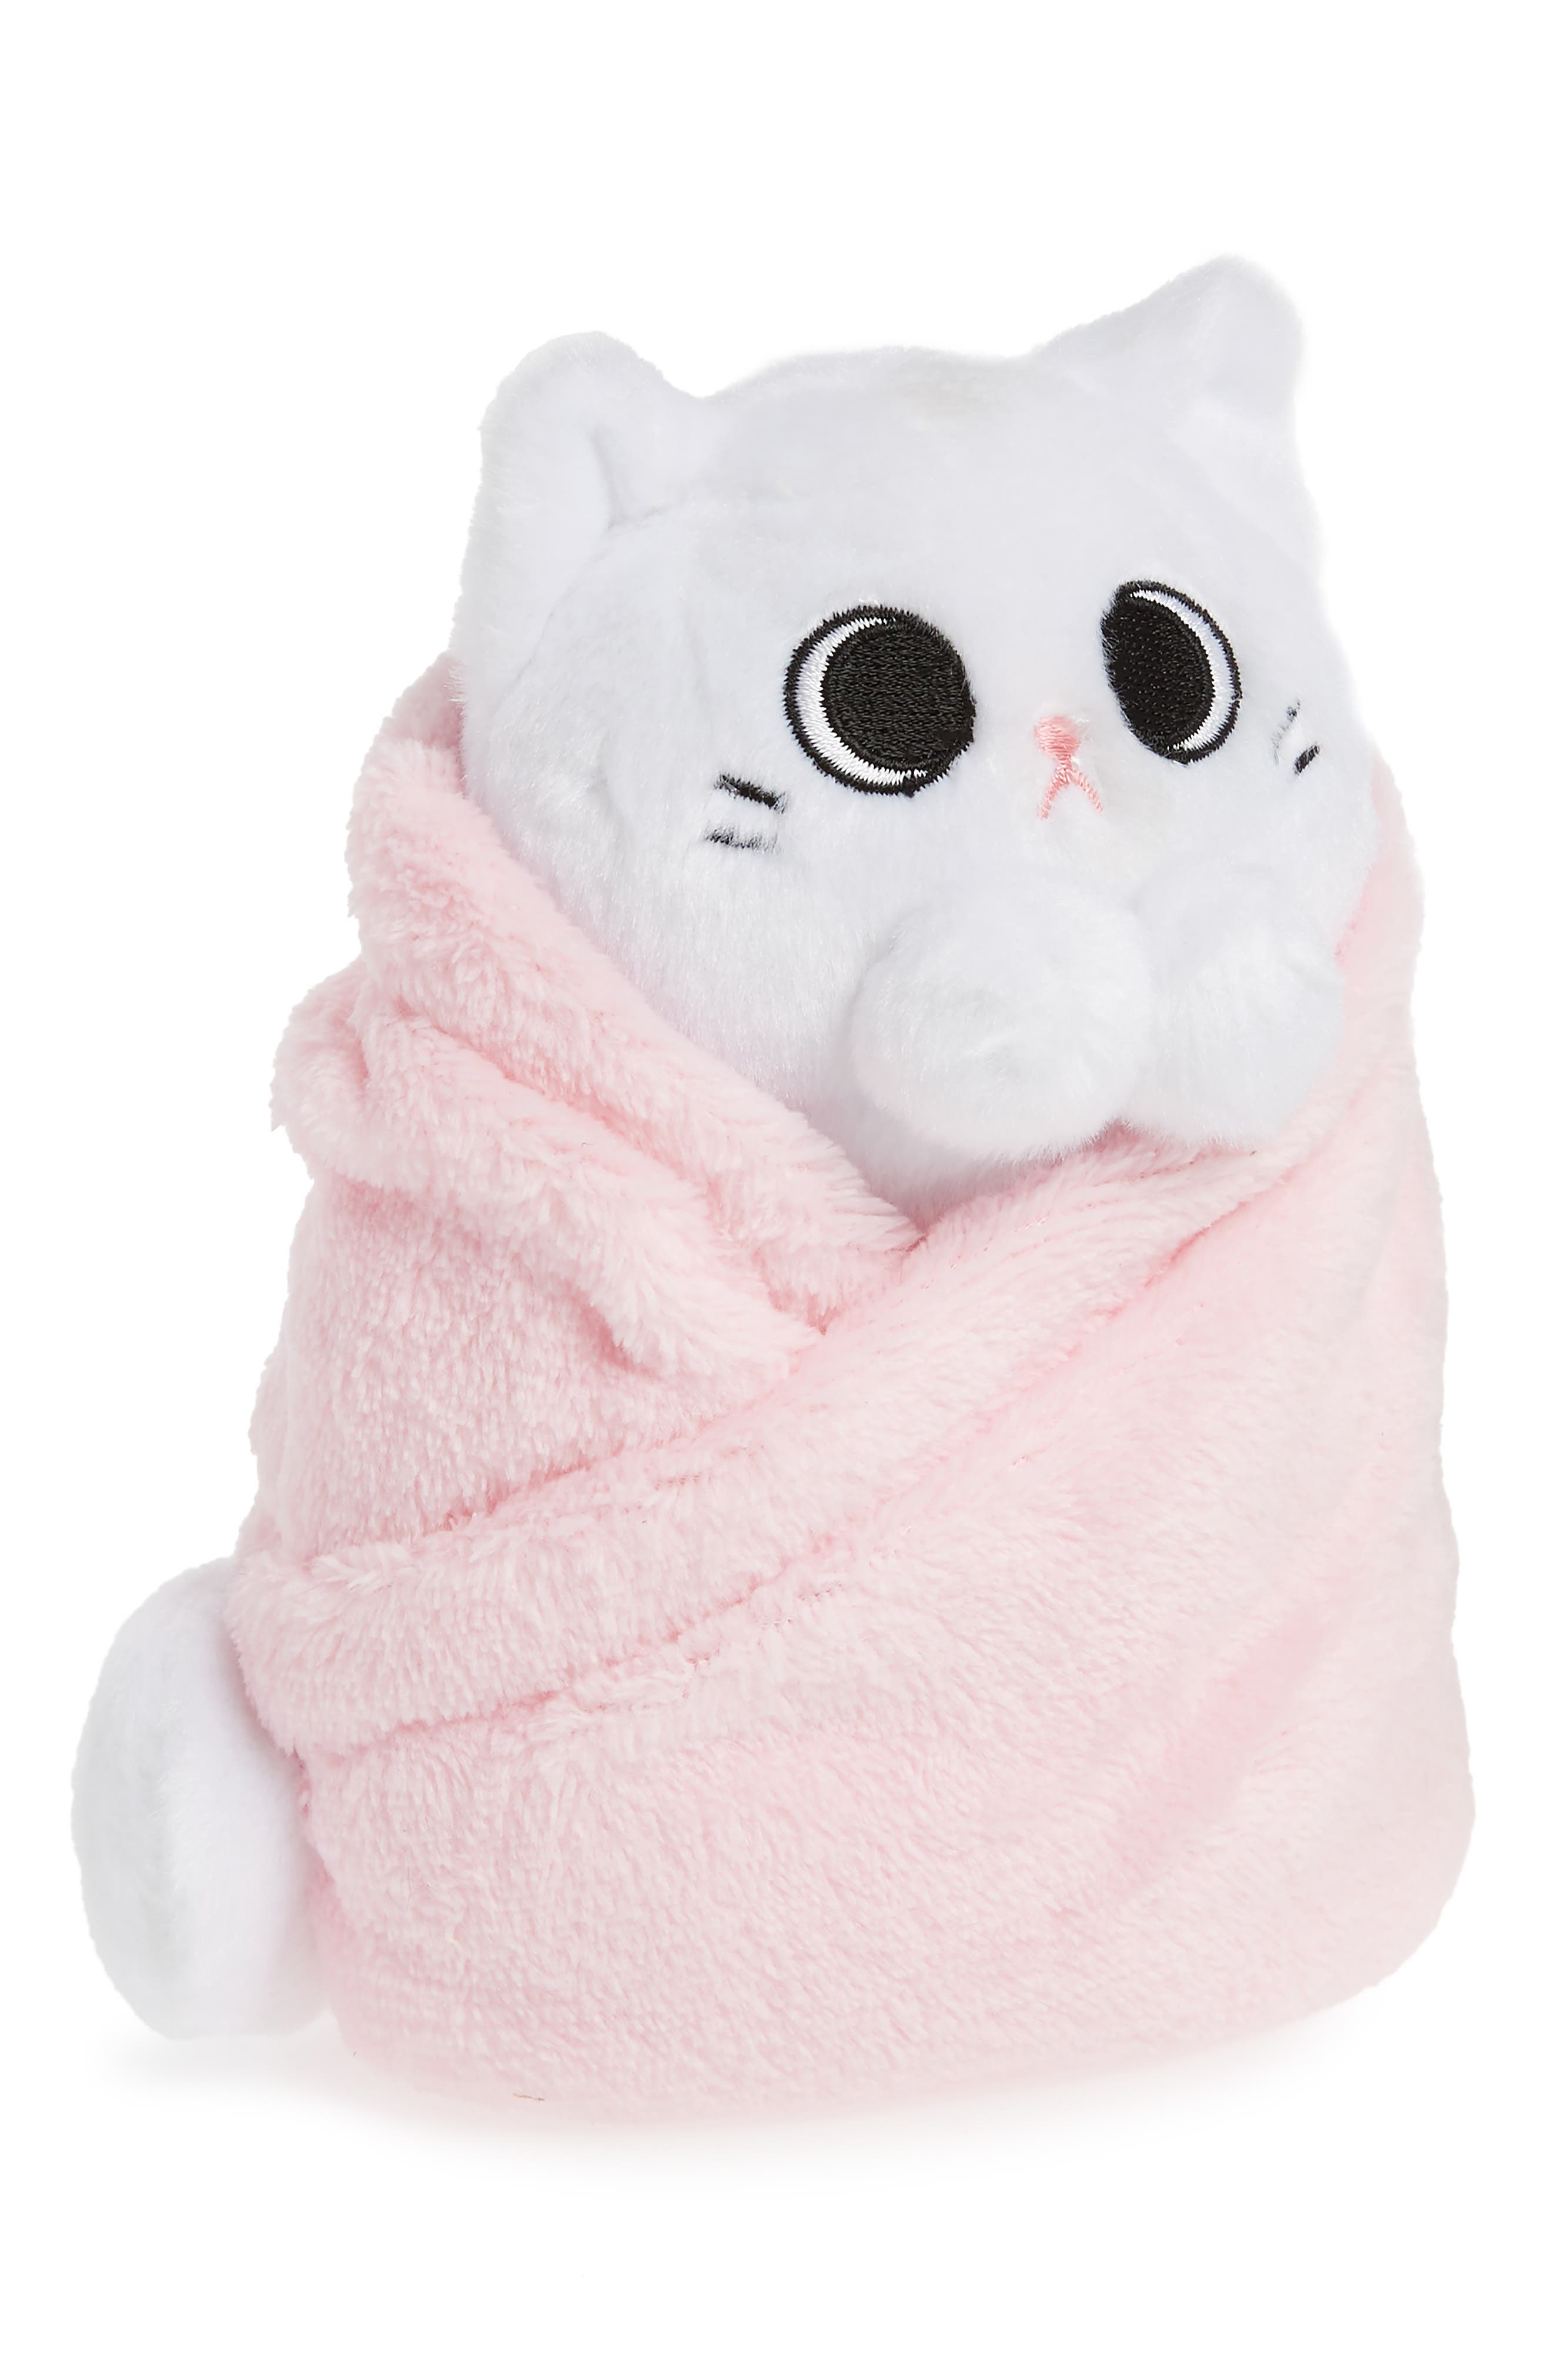 HASHTAG COLLECTIBLES Purritos - Mochi Stuffed Toy